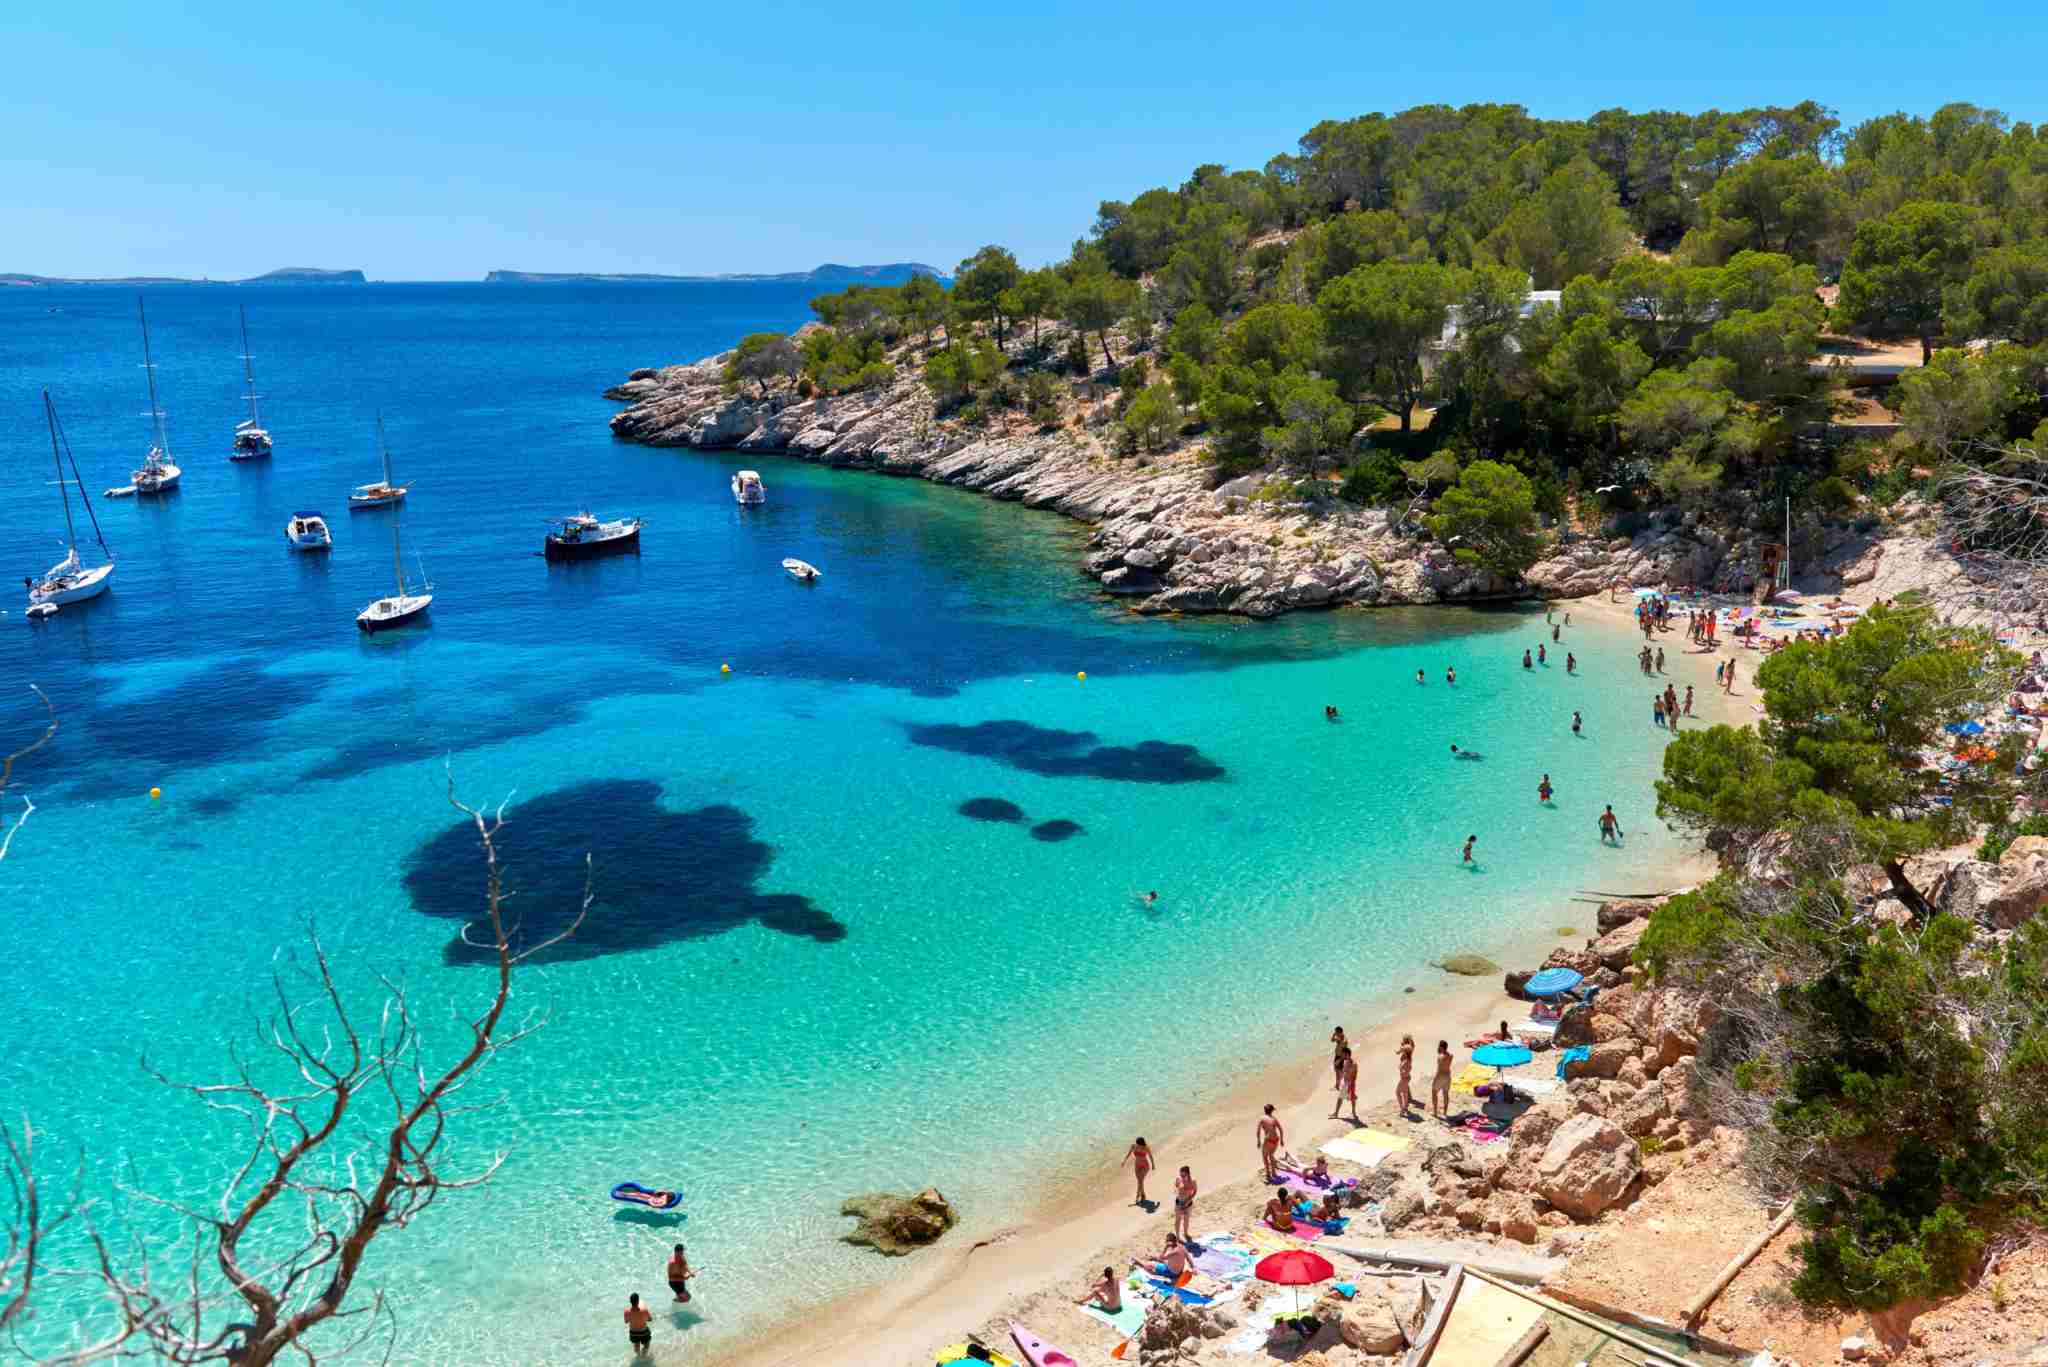 People enjoying vacations in the Cala Salada lagoon. Idyllic scenery. Ibiza, Balearic Islands. Spain